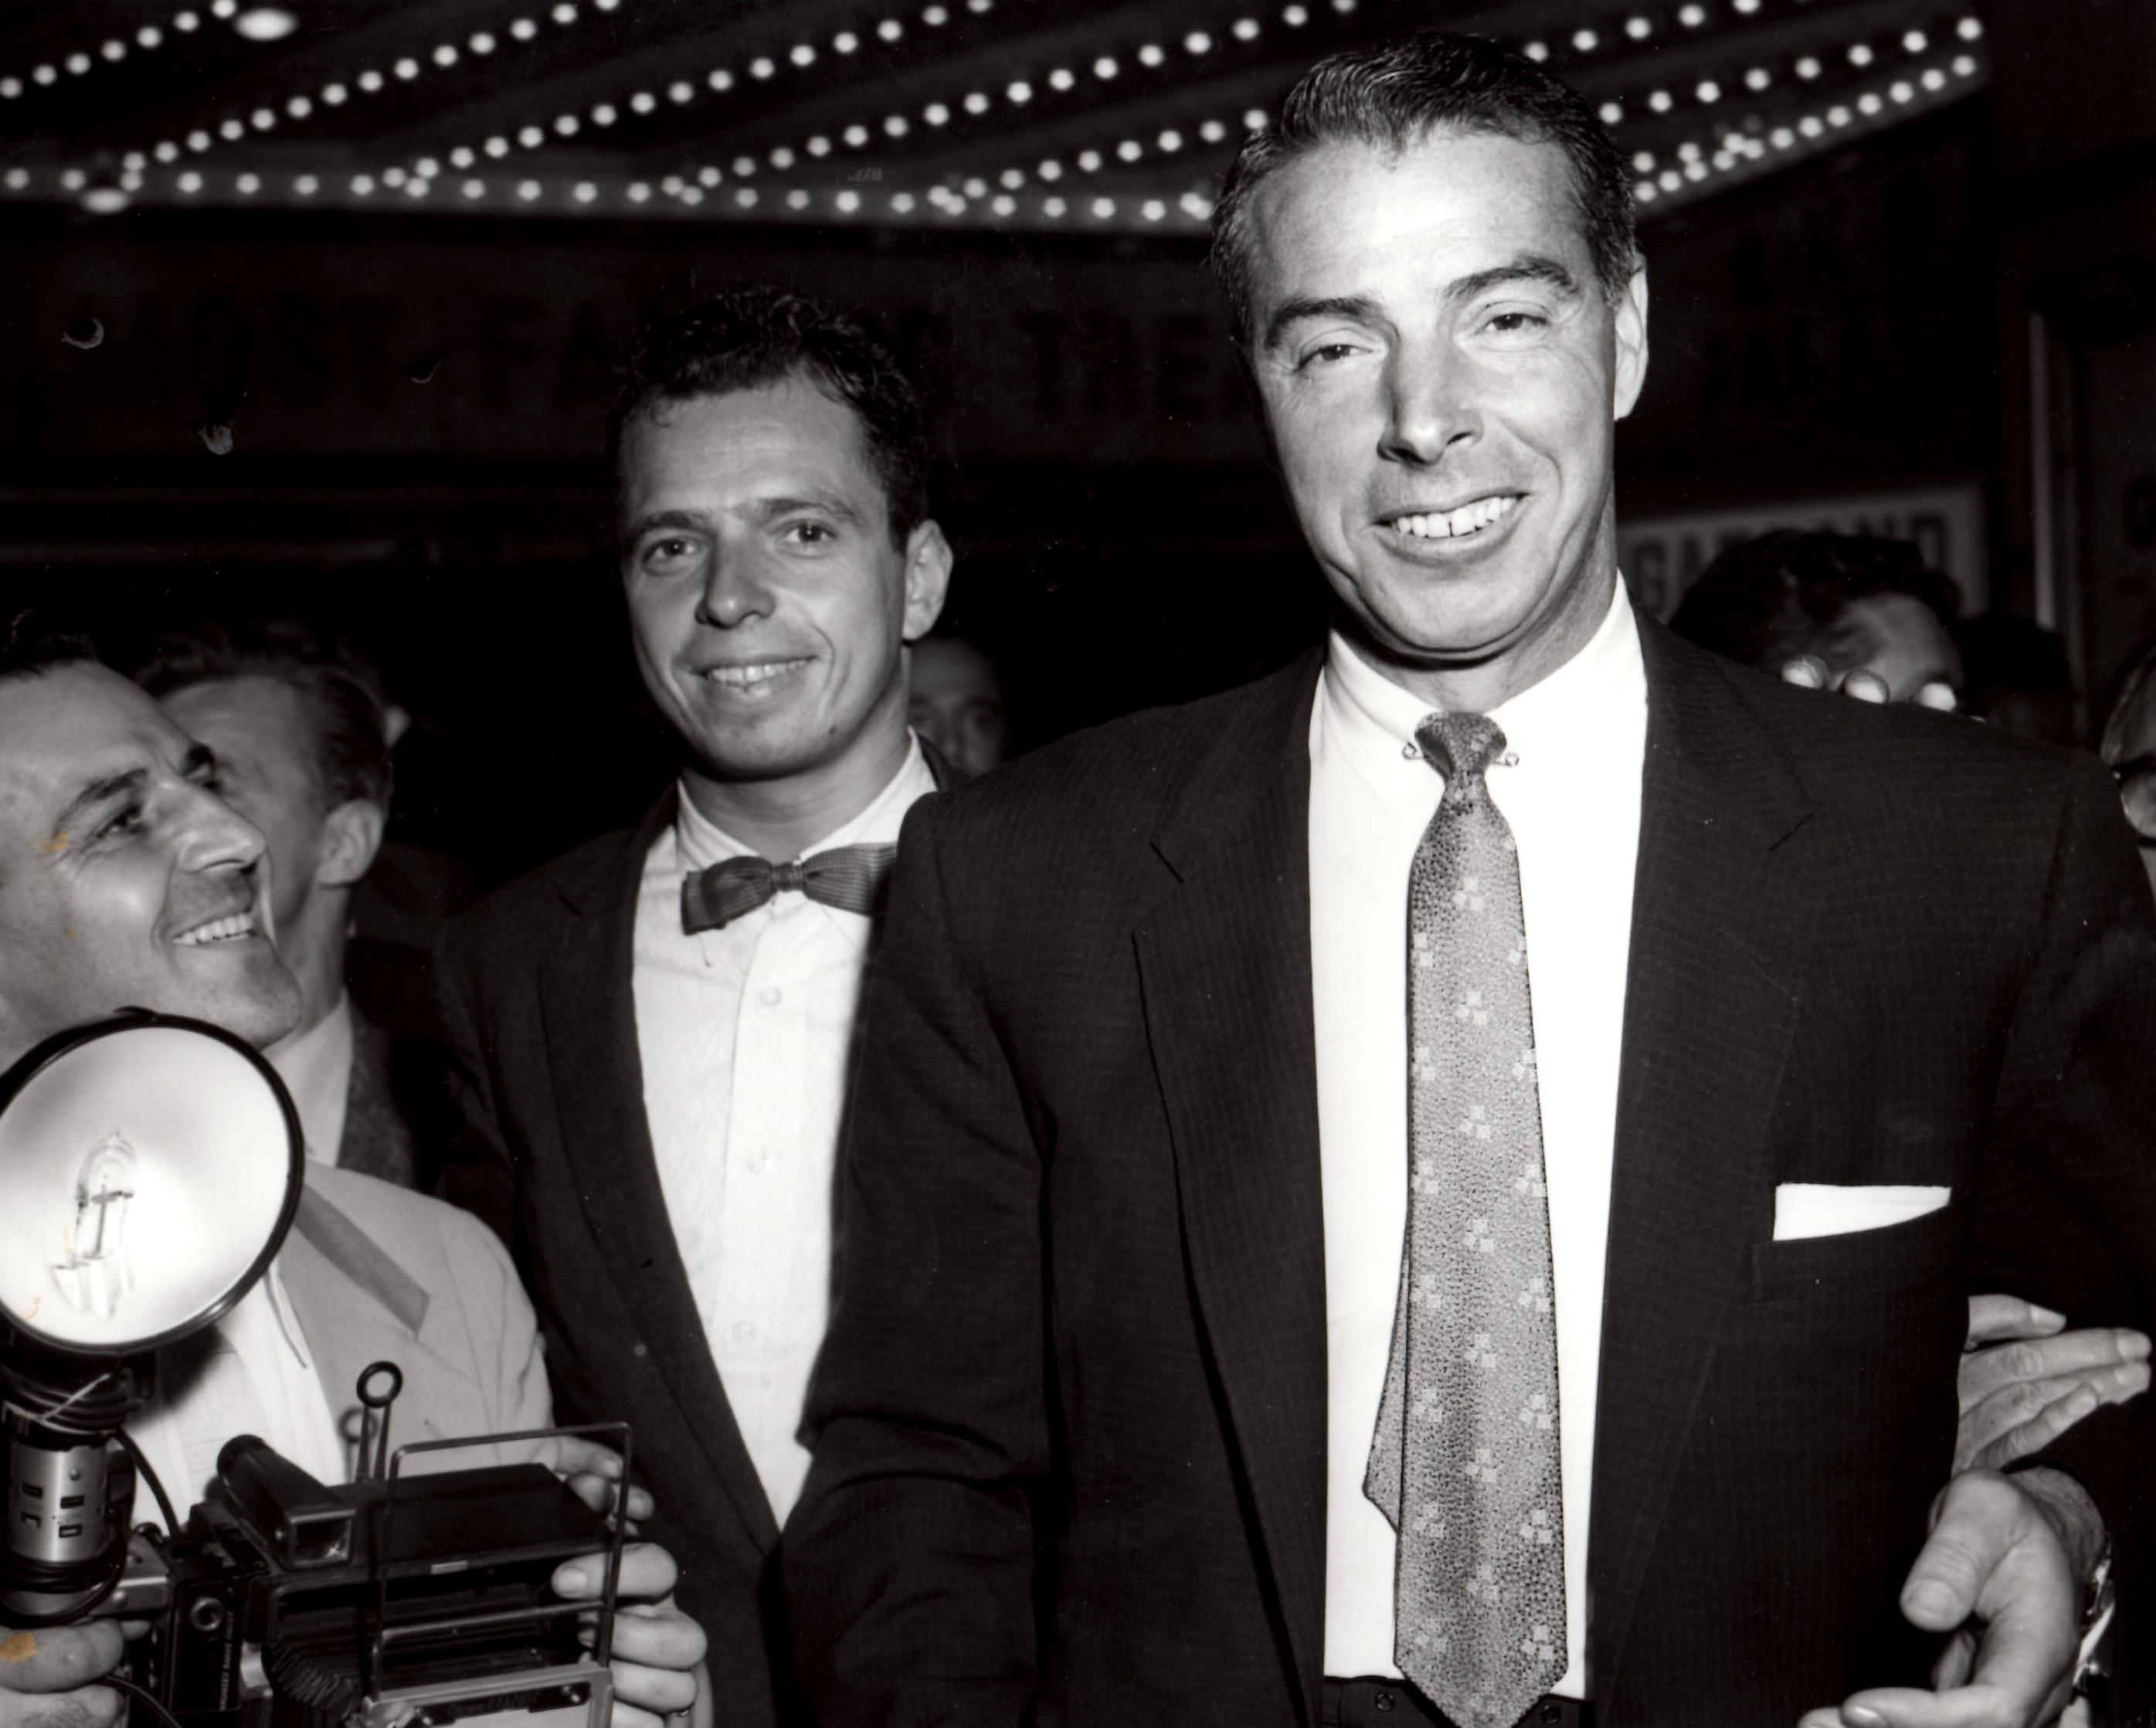 New York Yankee legend Joe DiMaggio coming out of Madison Square Garden after a fight.